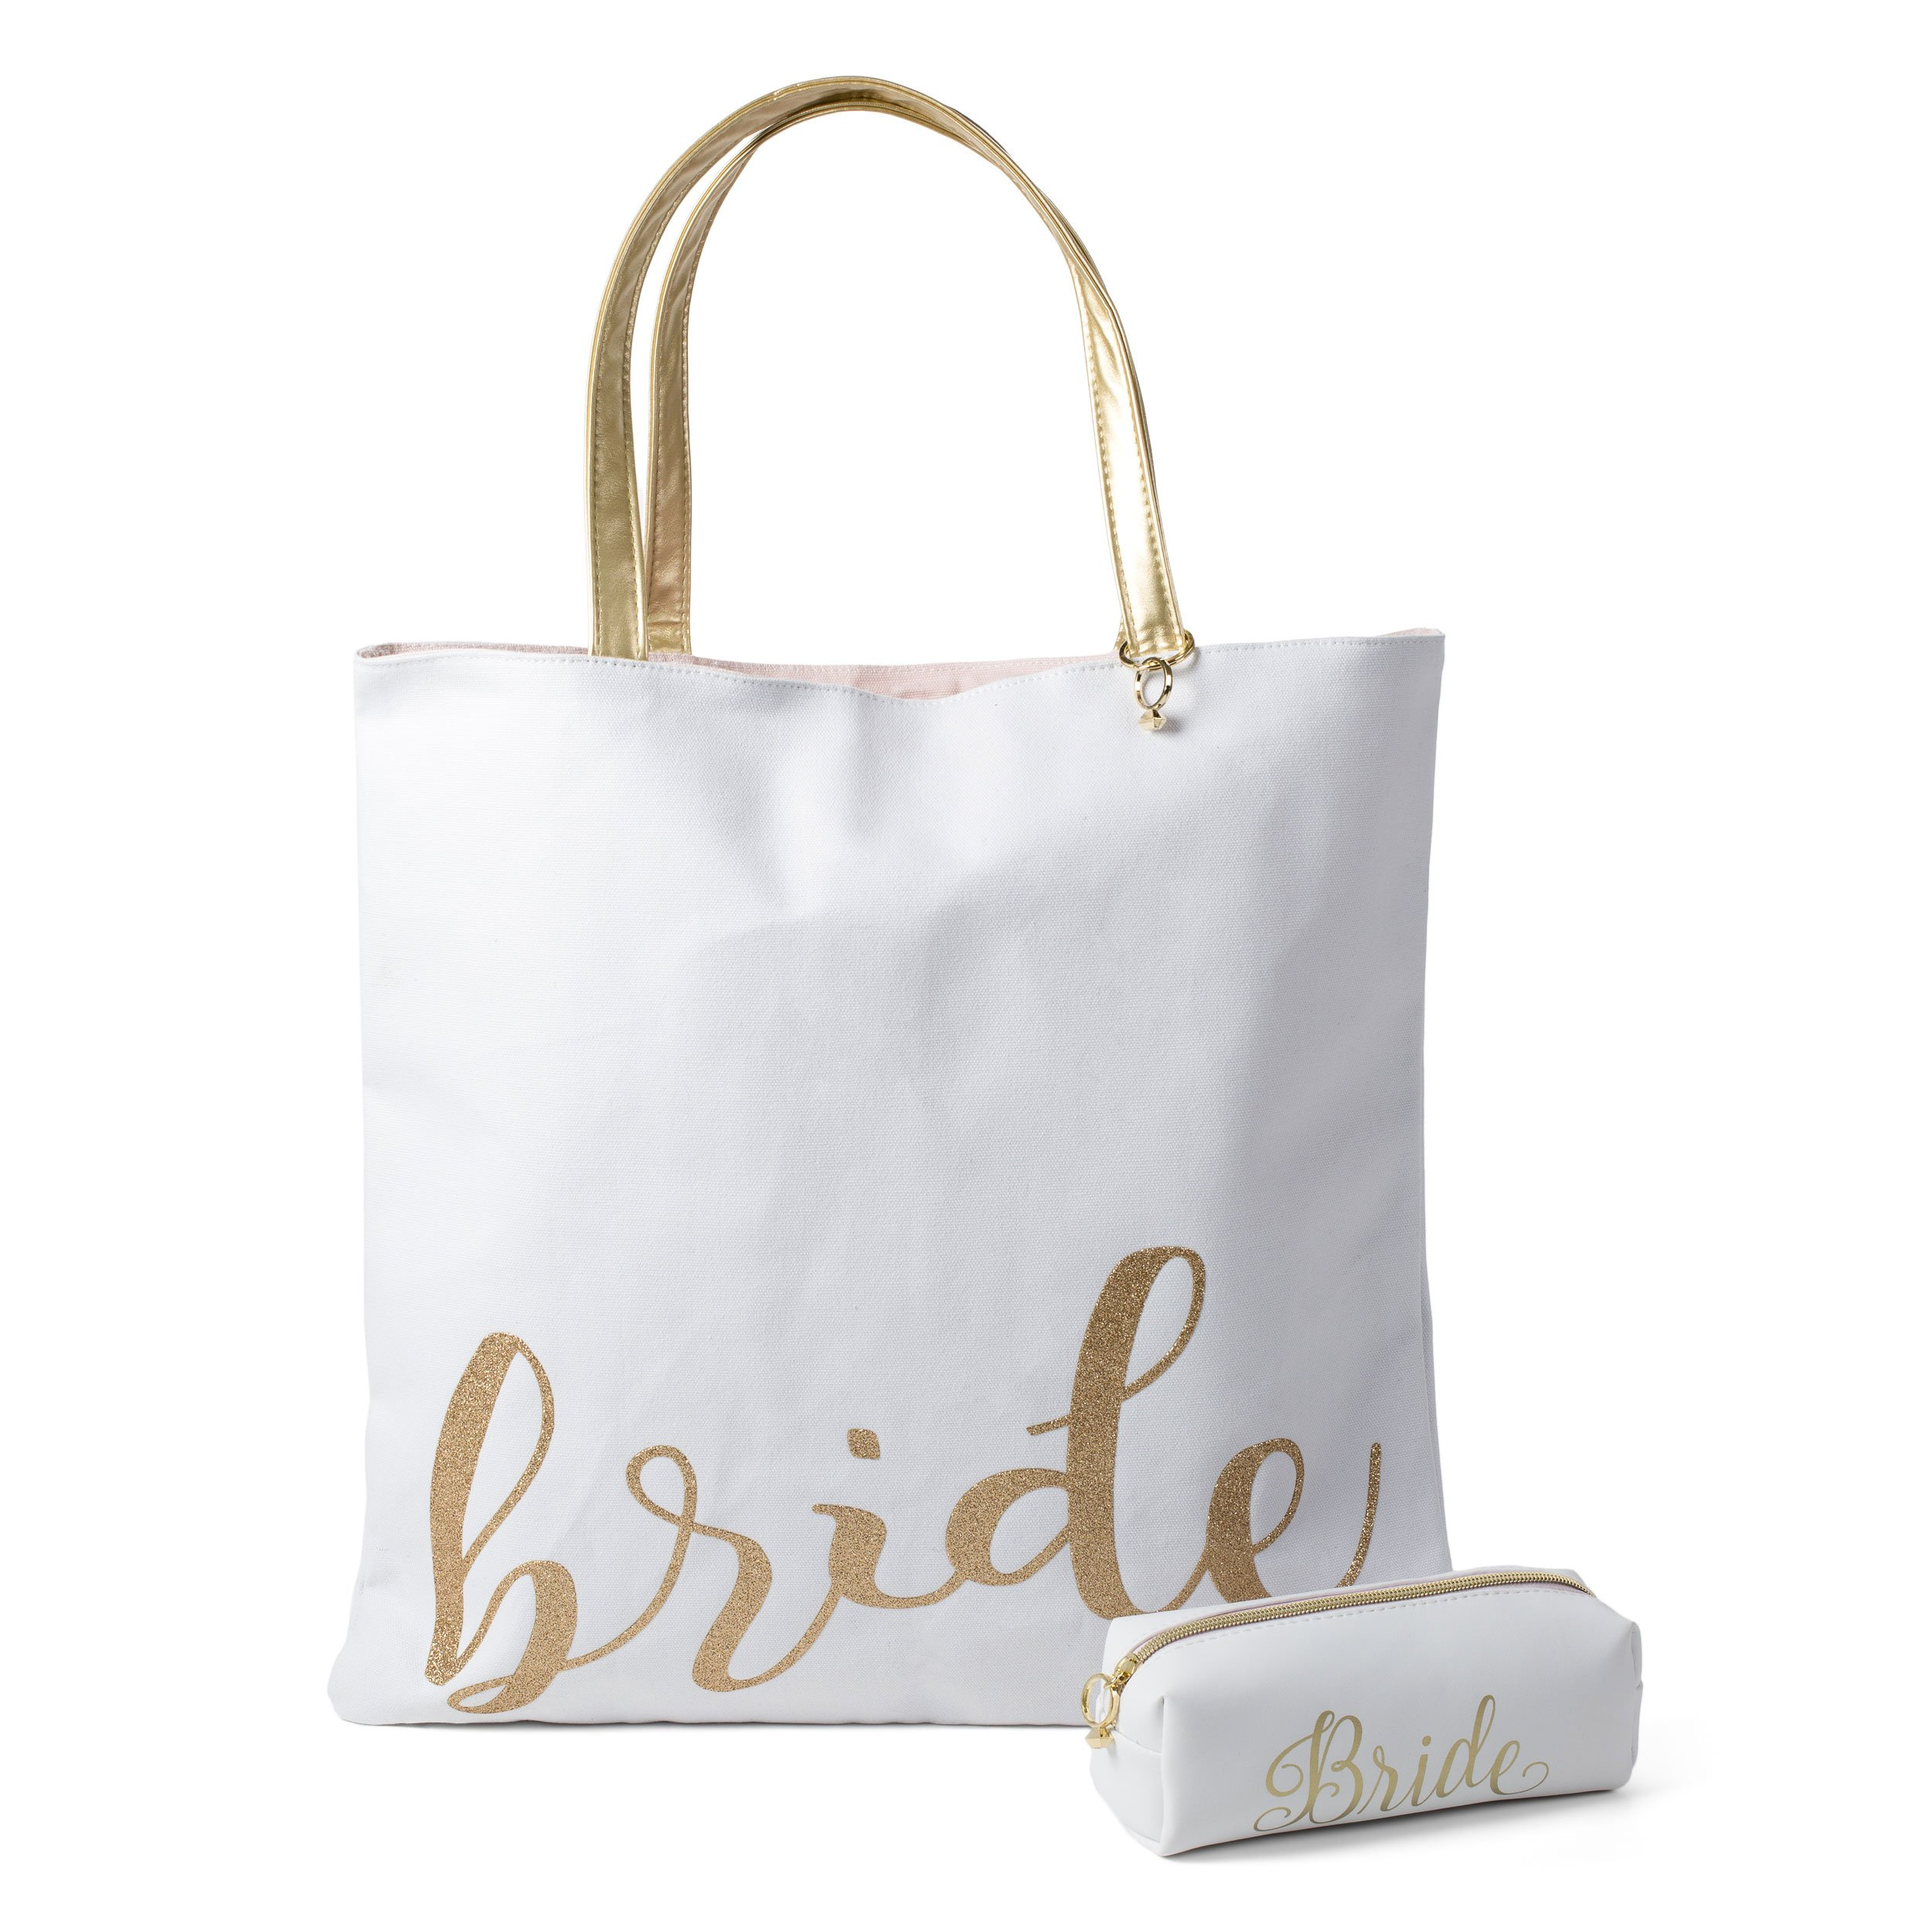 Bride Canvas Tote Bag: Large Reusable Cloth Fabric Shoulder Bags with Handles for Women - Reversible Purse Totes for Bridal Party with Mini Bride Cosmetic Bag Included